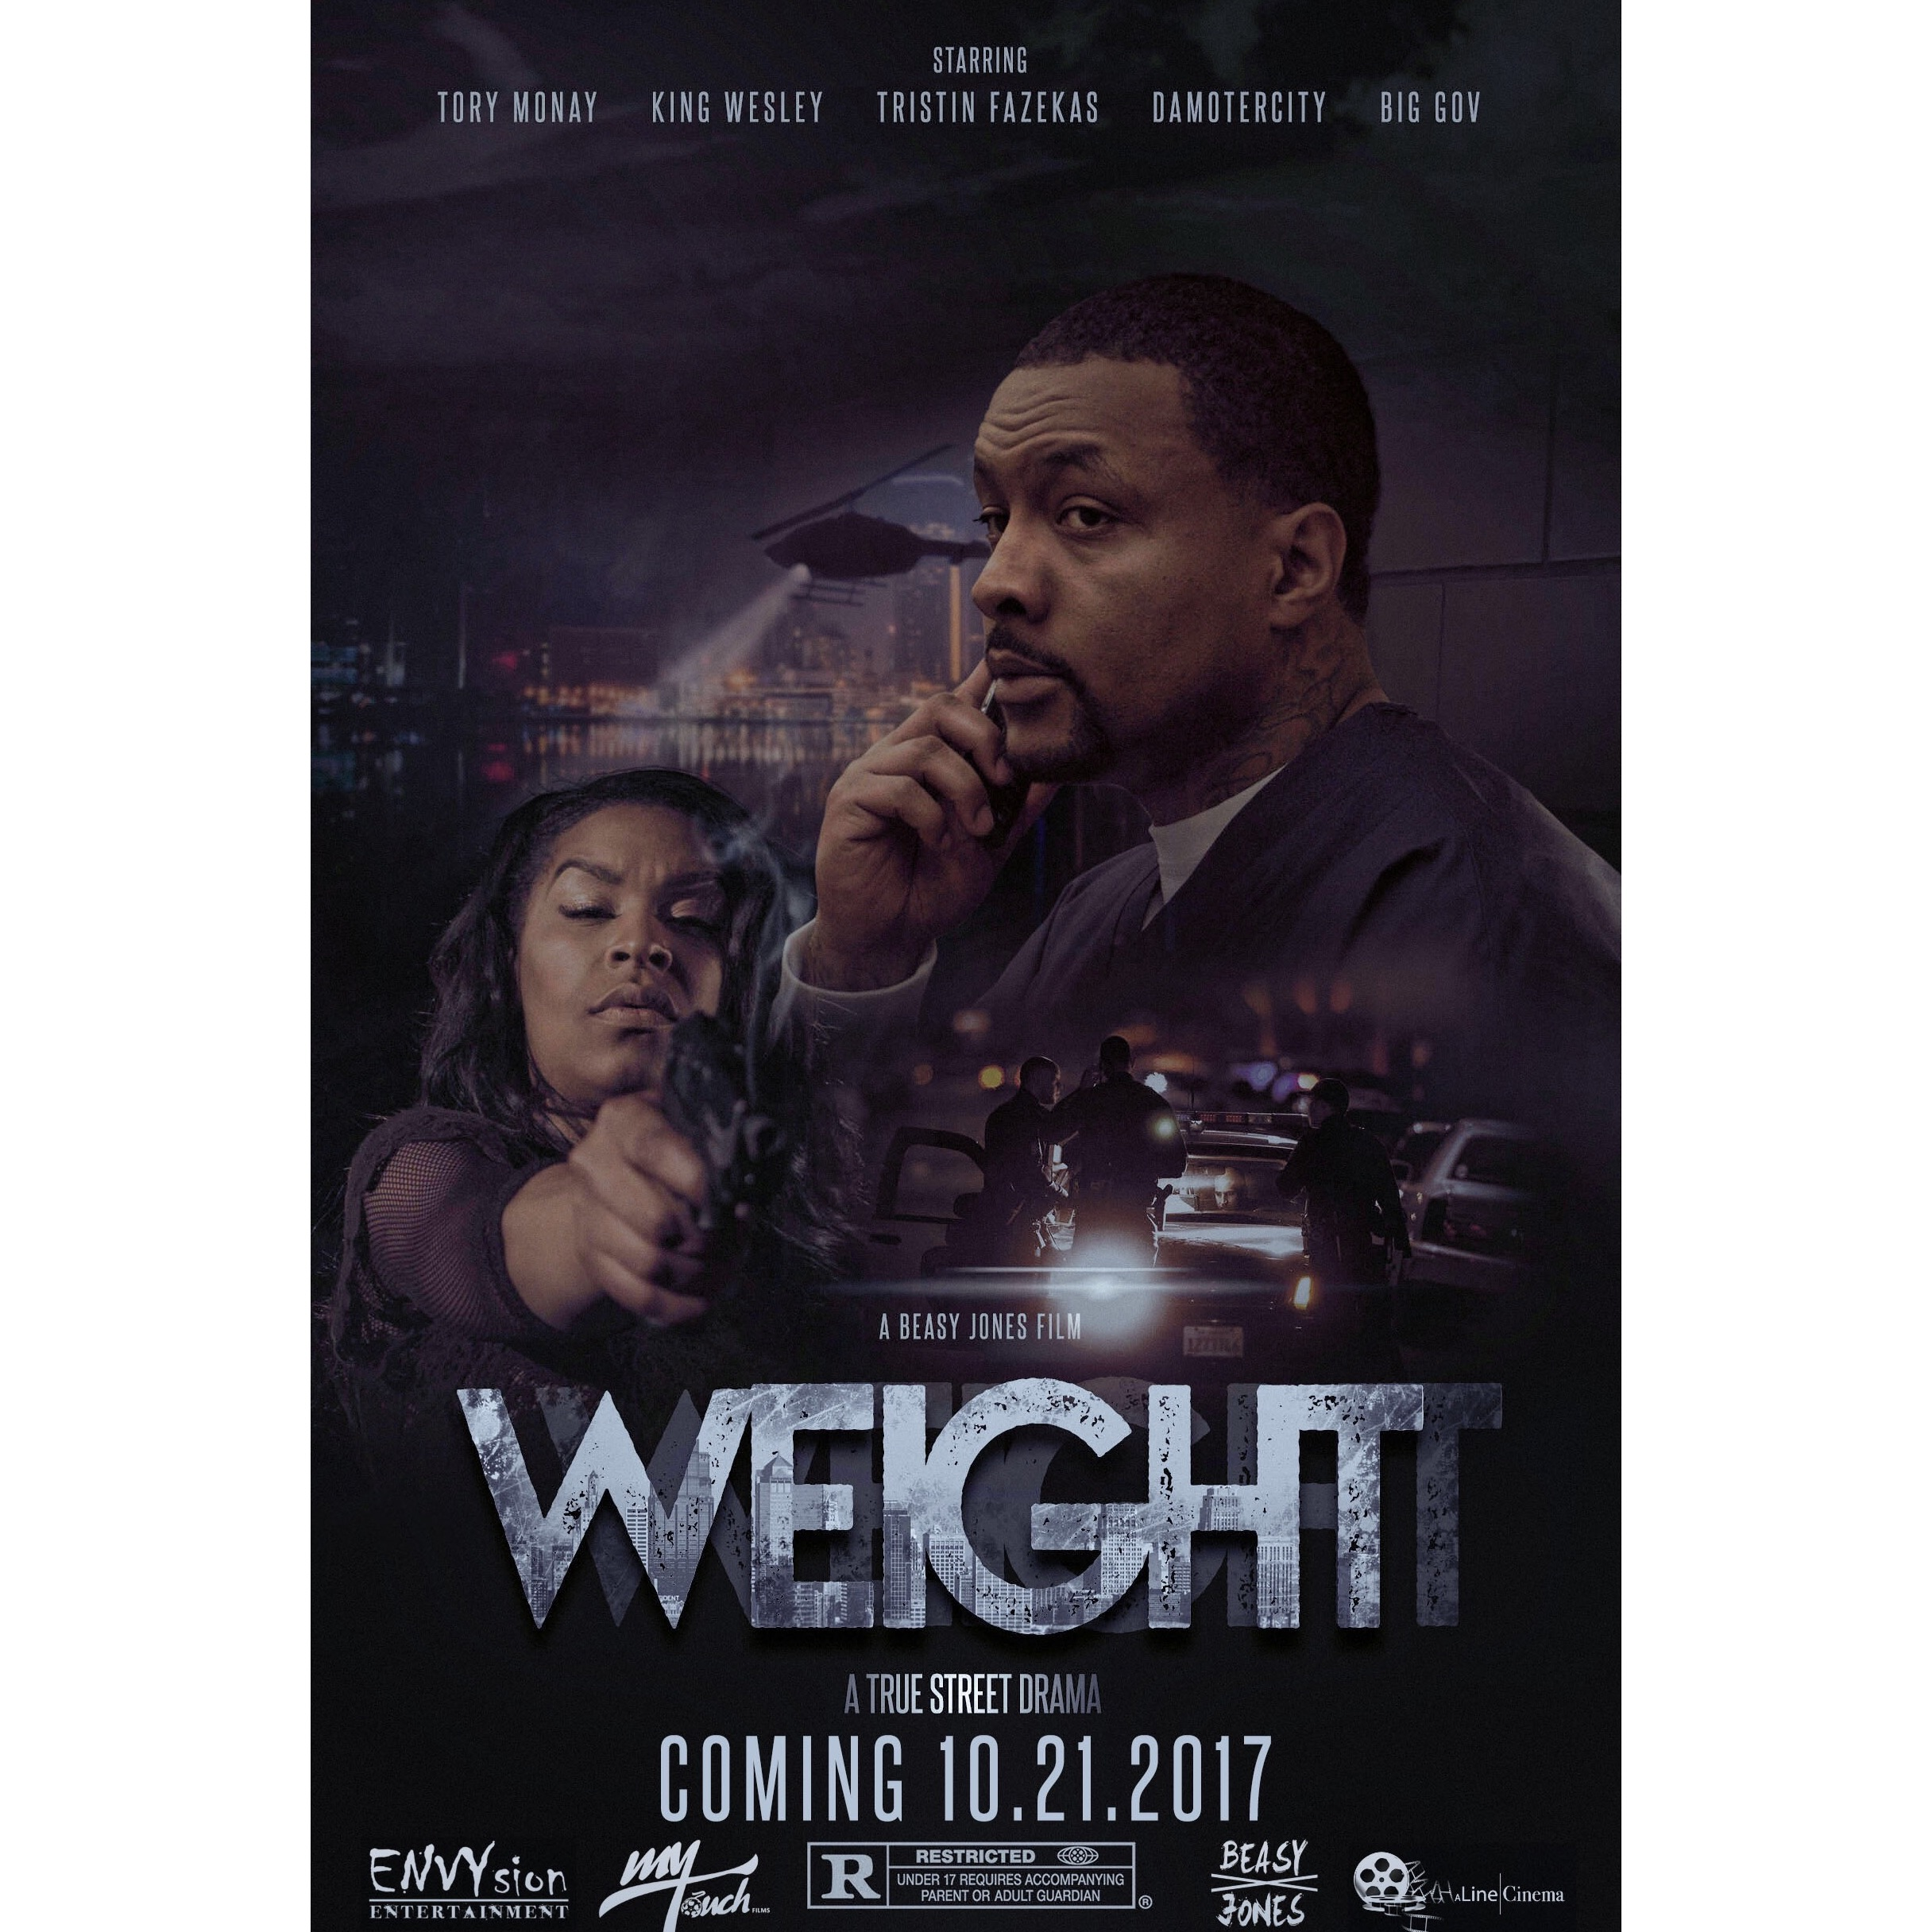 Weight The Movie Coming to theaters 10.21.17    Leading Actress  Tory Monay   Styling provided by  Dusk 'Til Daun, Llc.   Outfits Provided by : TheLuxuryLocker.com , Spoiledforever.com , Glowupclothing.com , & RunwayCouture.Com